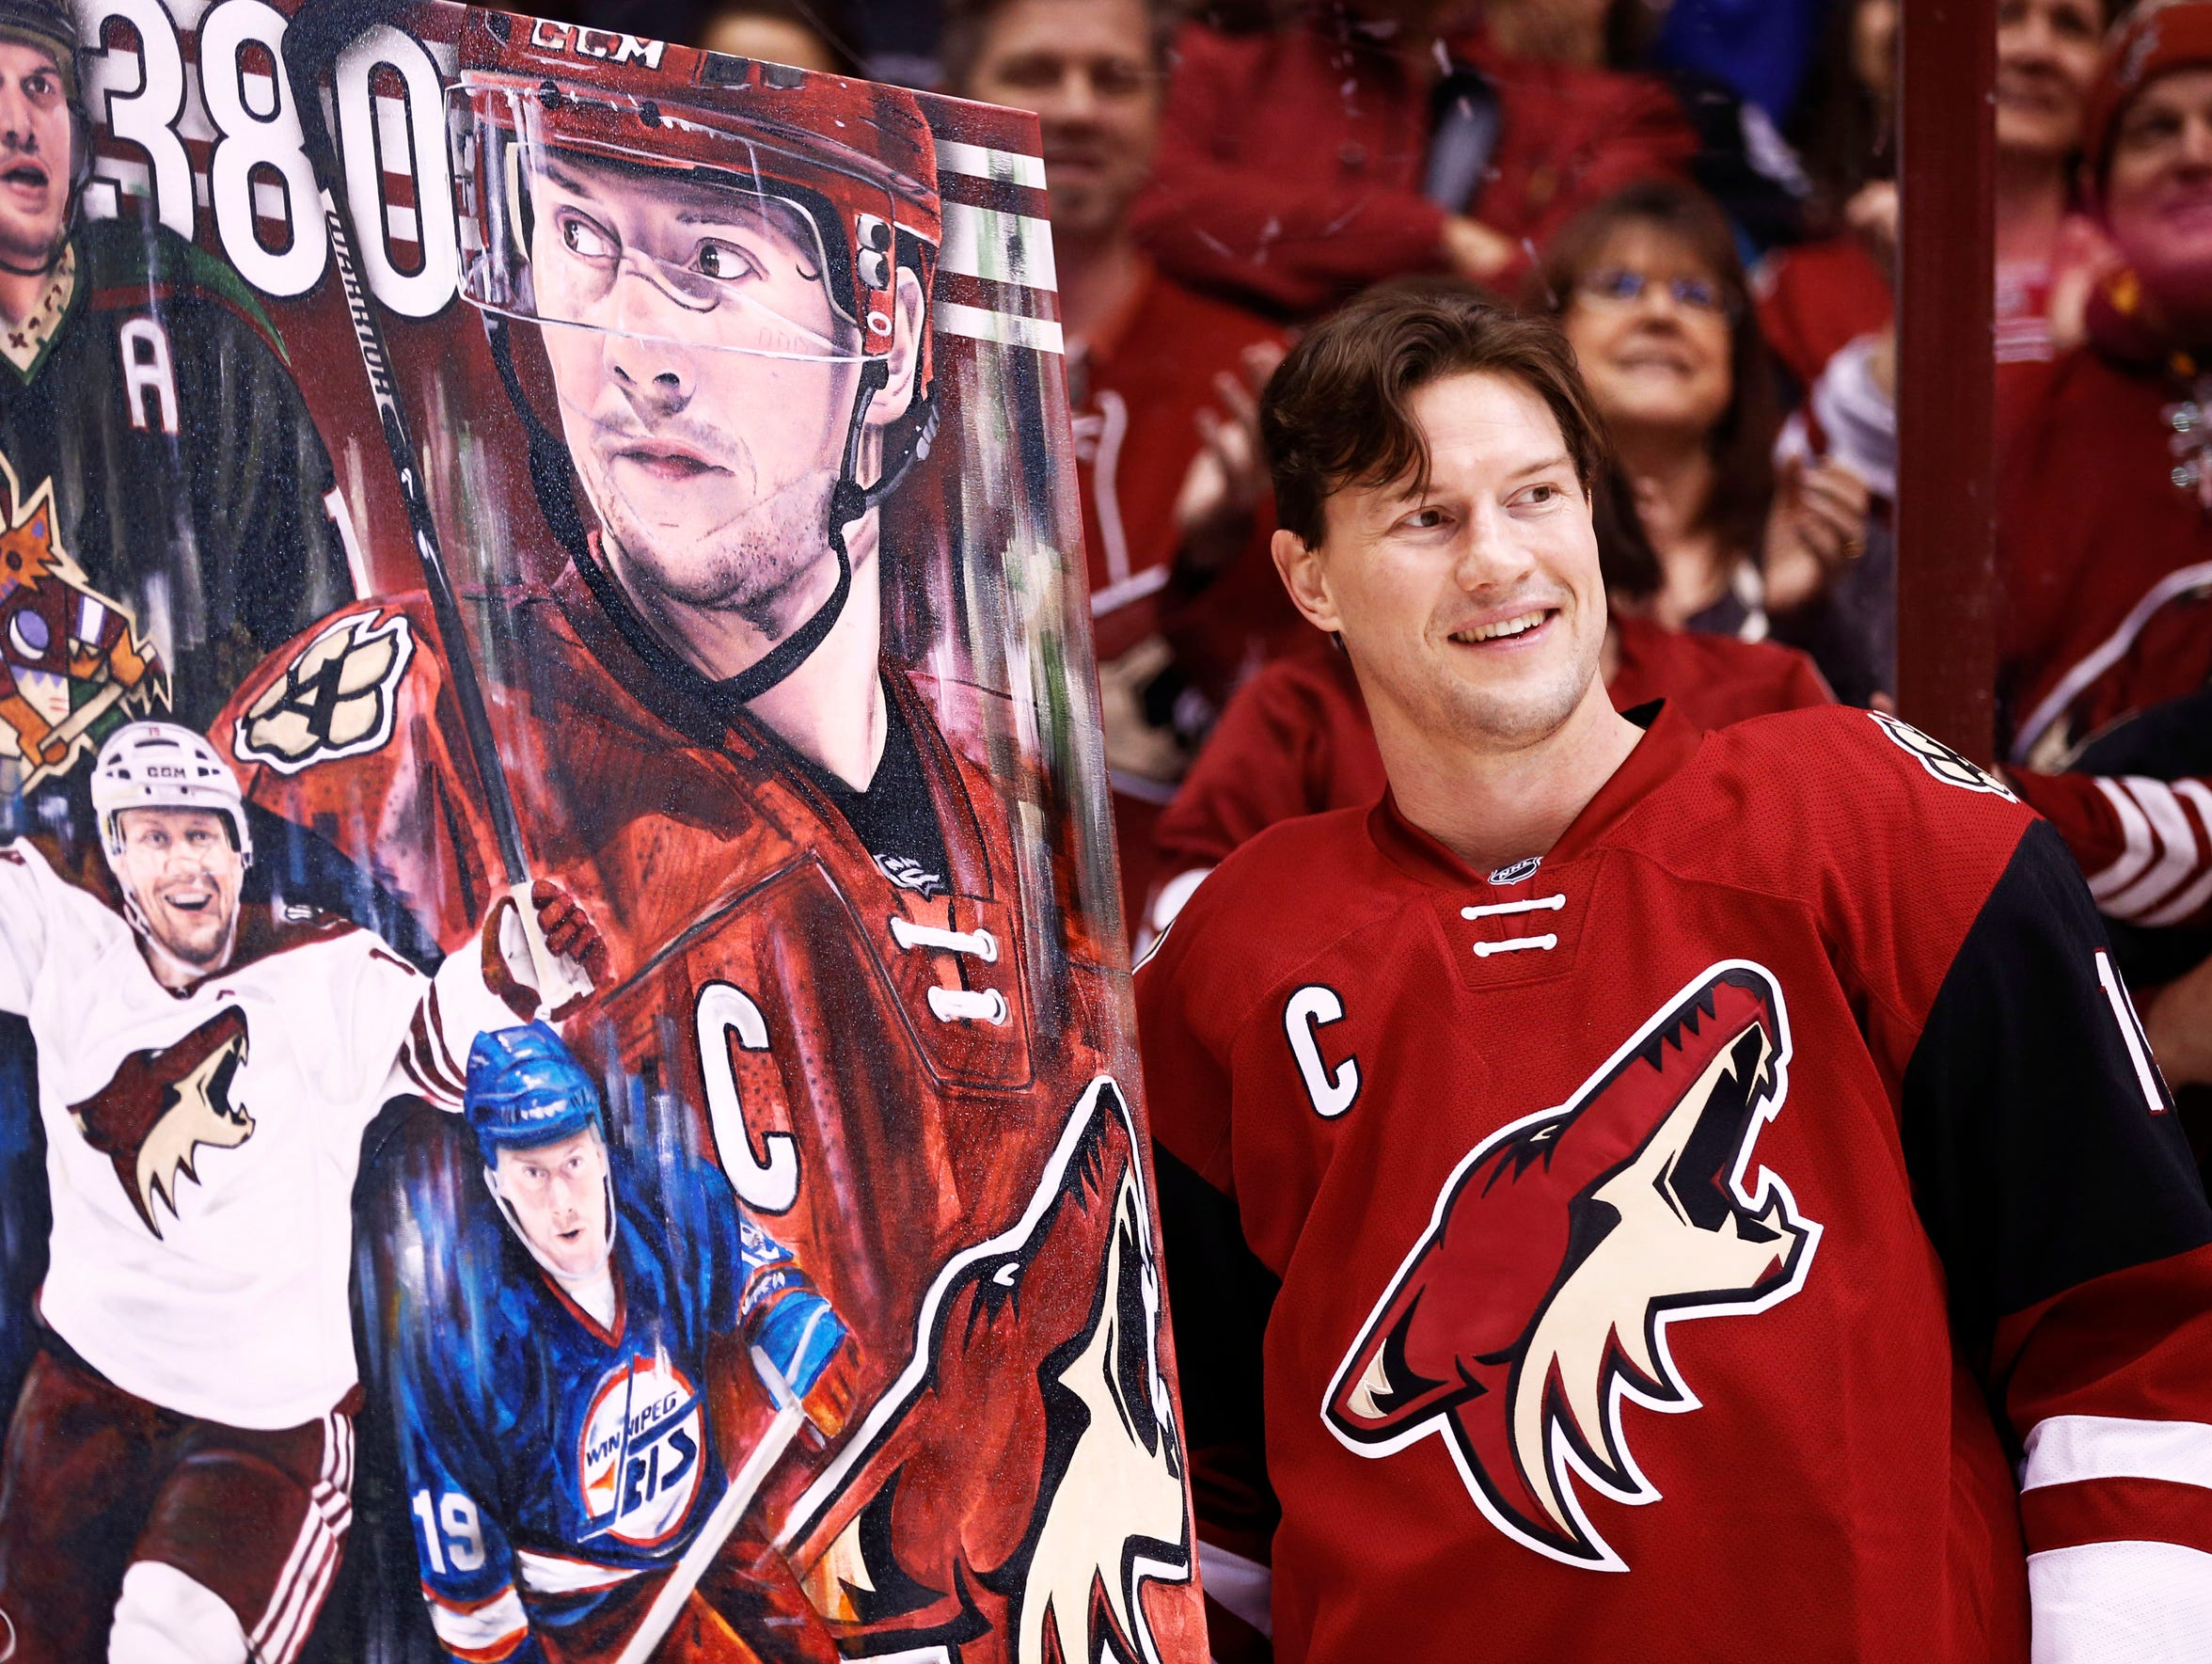 Shane Doan is honored for becoming the Coyotes' franchise leader in goals in 2016.